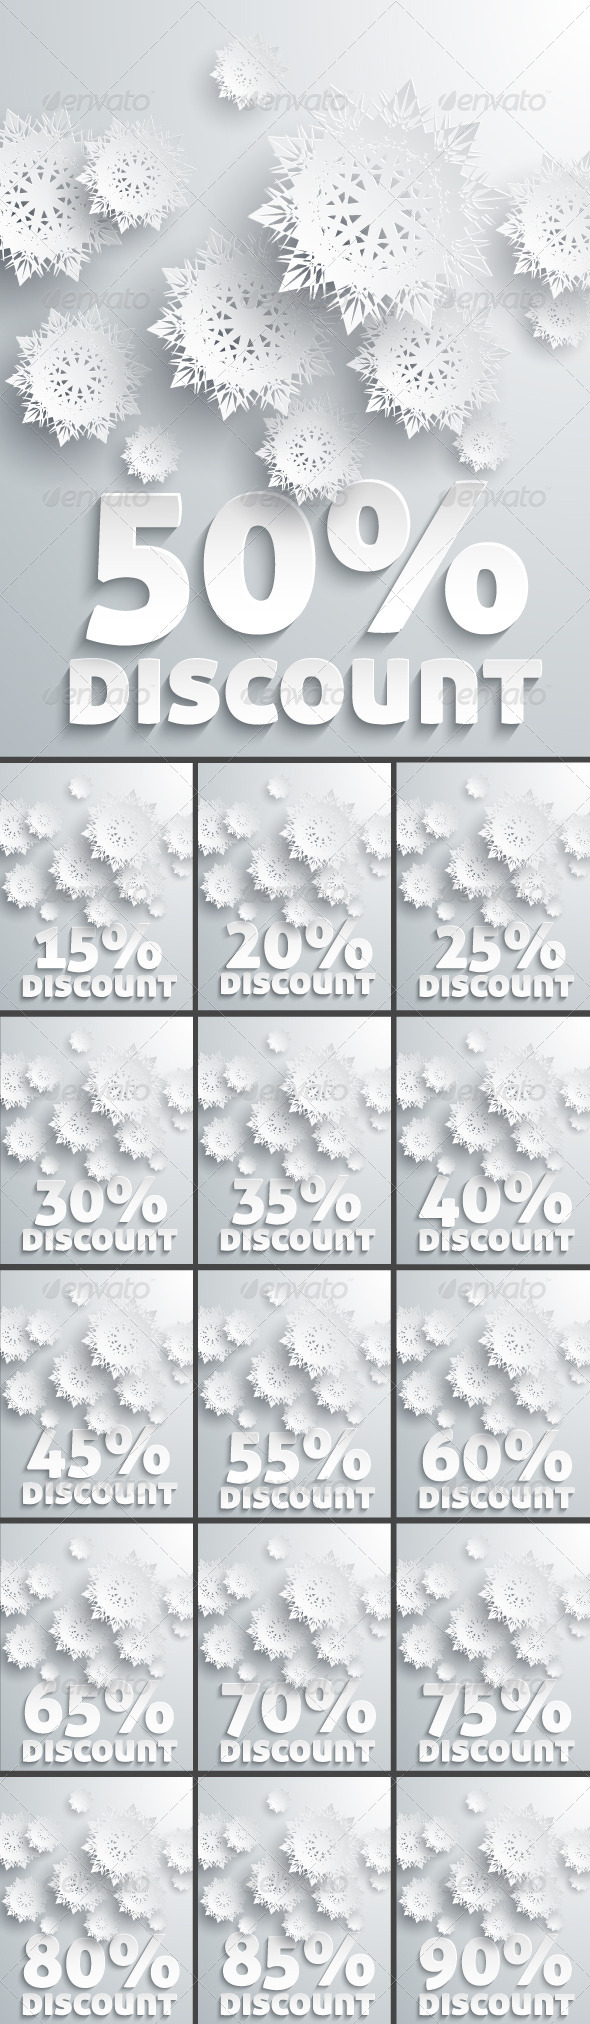 Discount Percent with Snowflake - Retail Commercial / Shopping